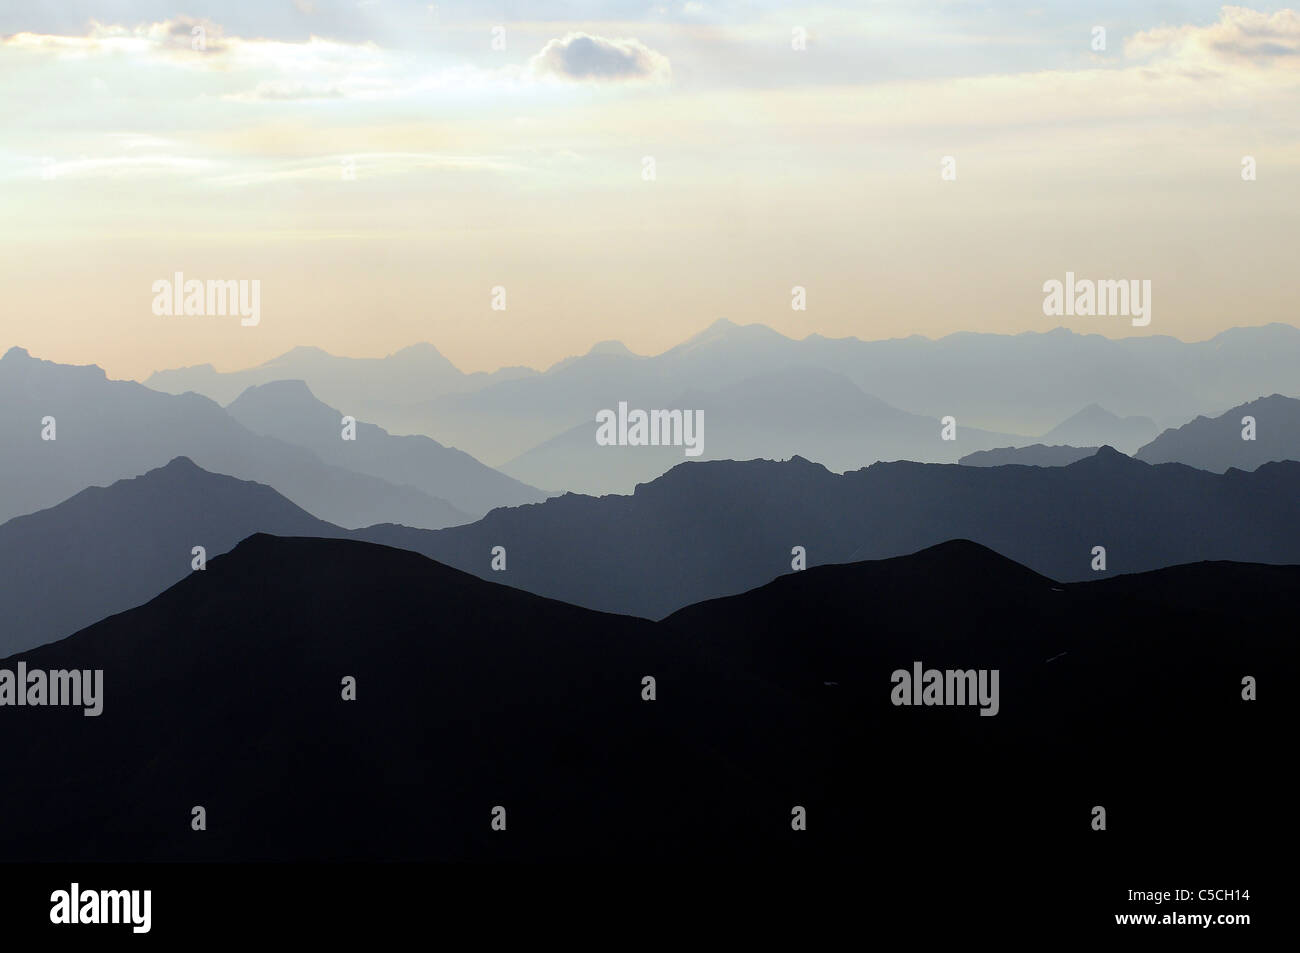 The view from the top of Pic Blanc in the ski resort of Alpe d'Huez in the French Alps during the summer. - Stock Image